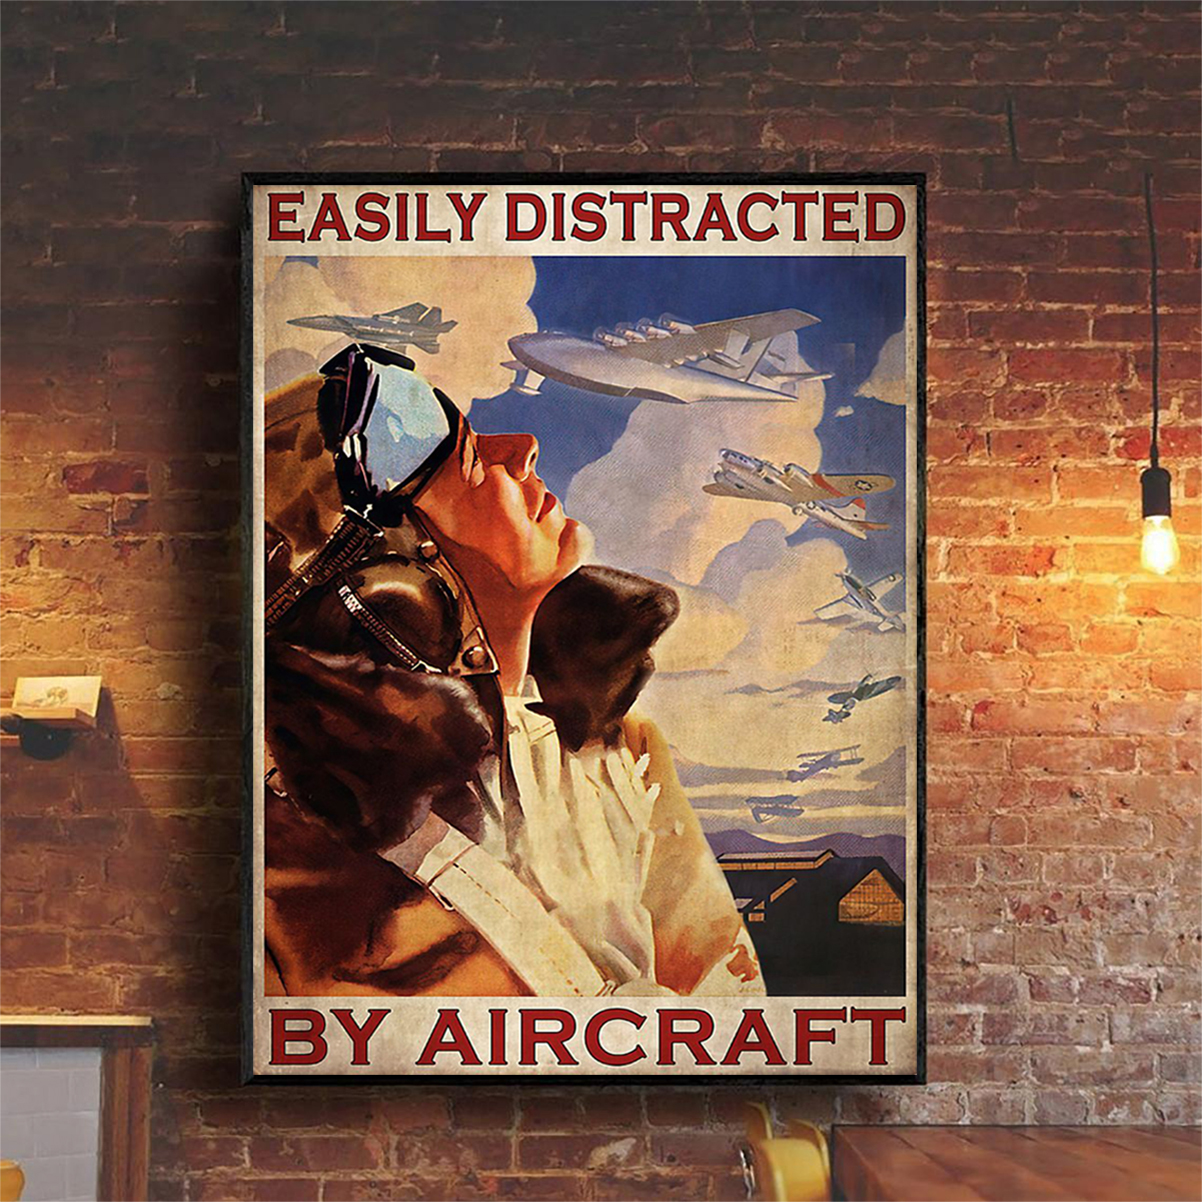 Easily distracted by aircraft poster A2